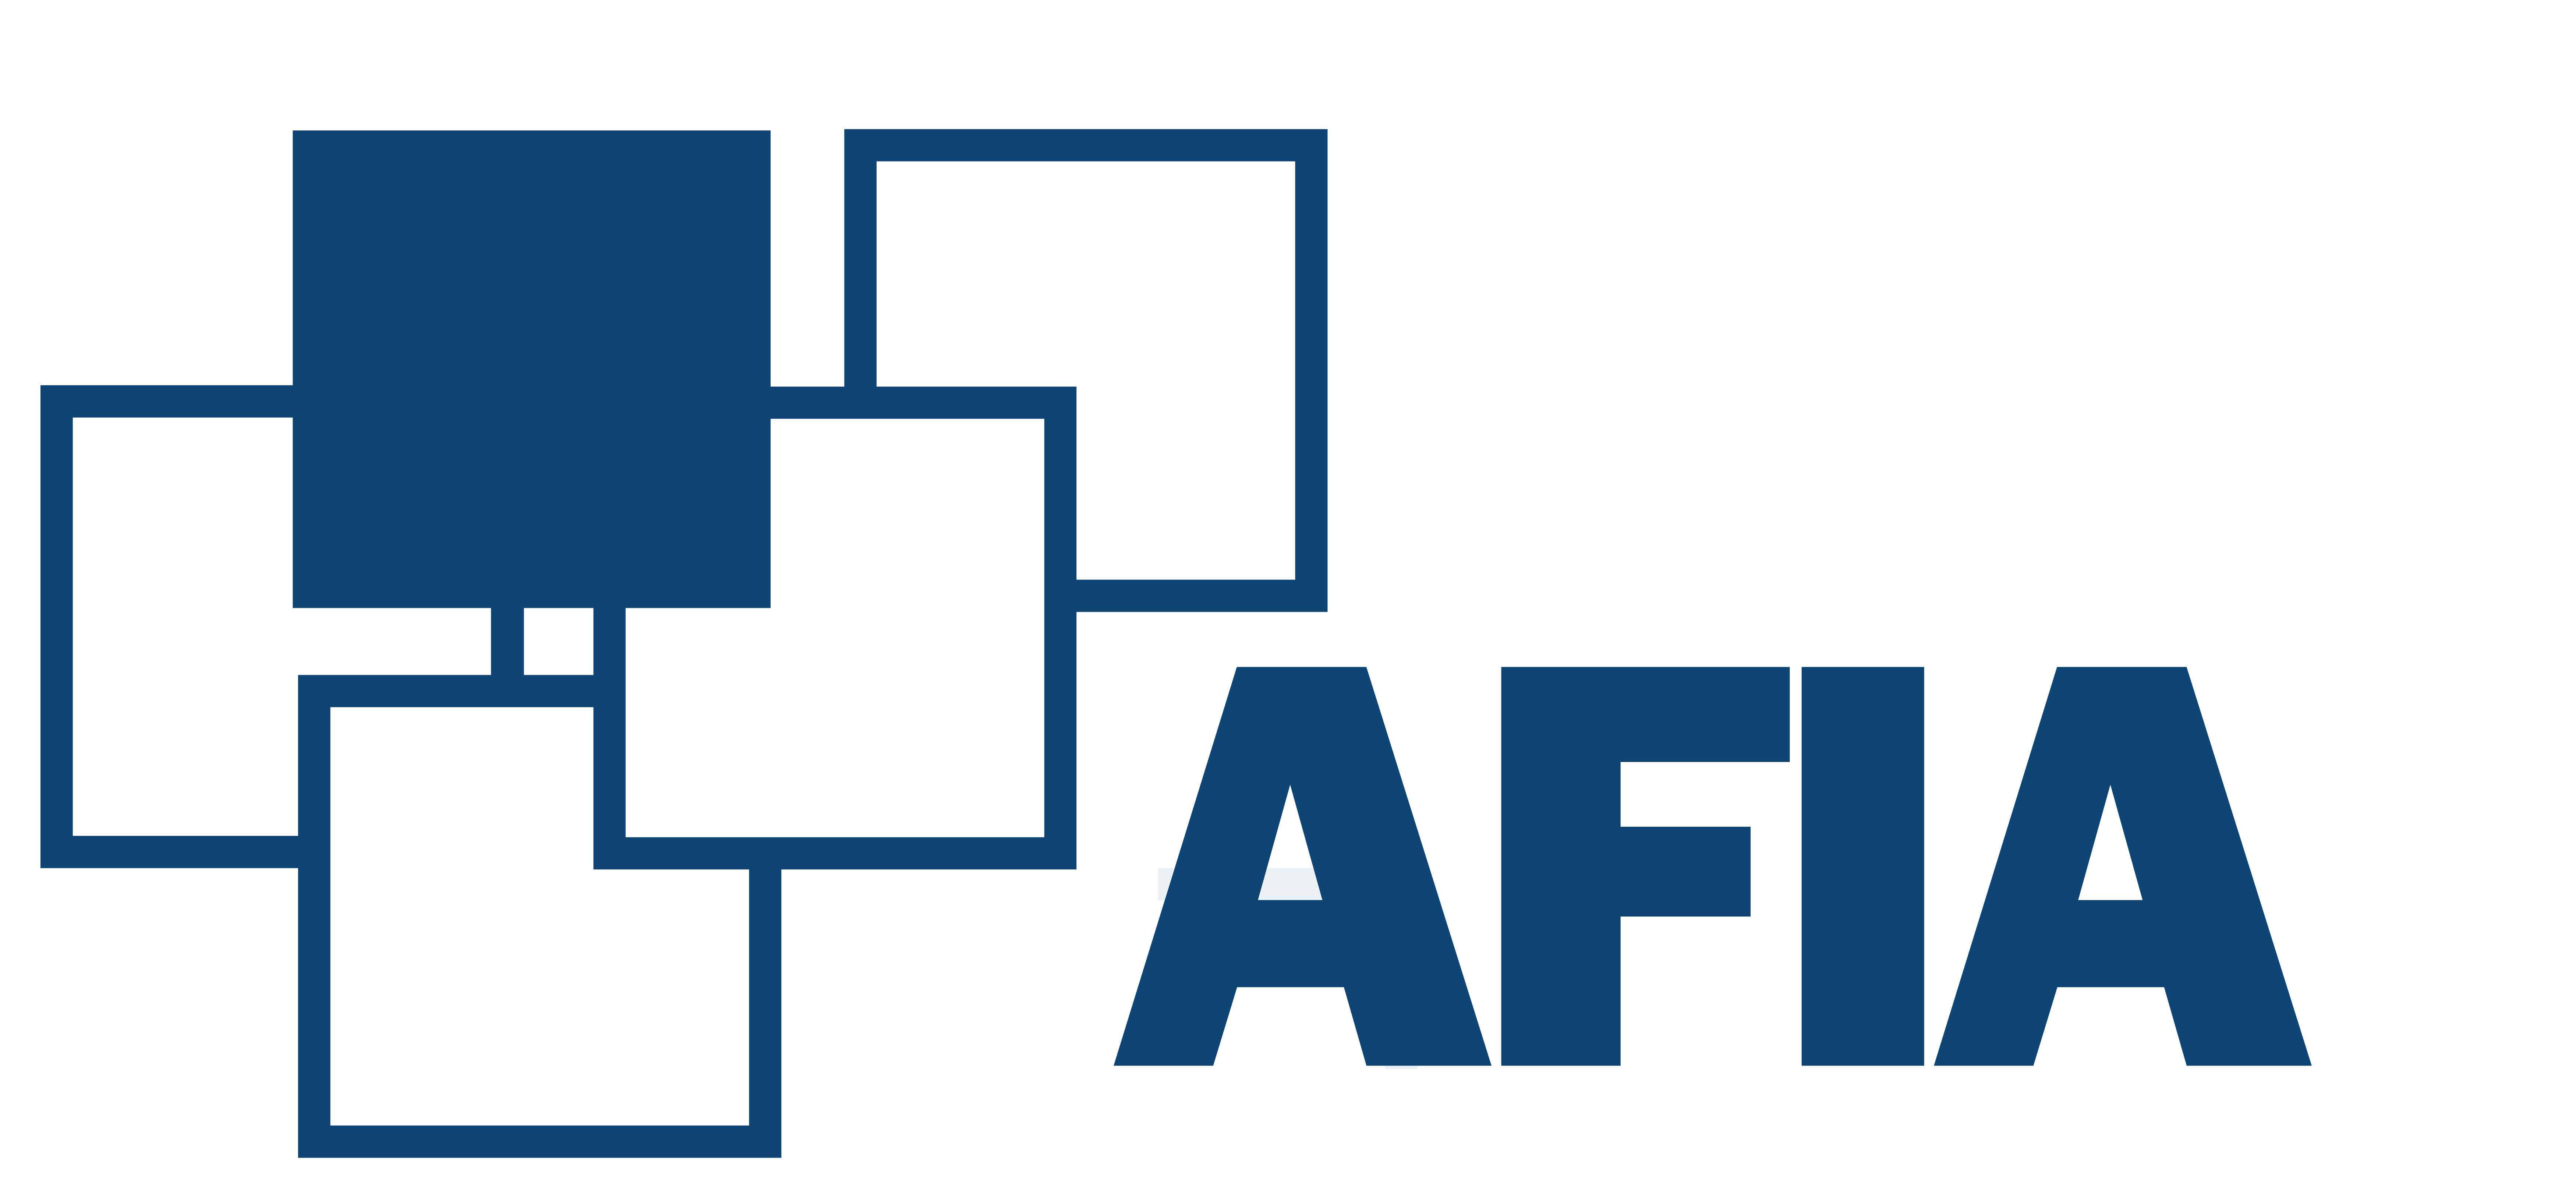 Australian Finance Industry Association logo